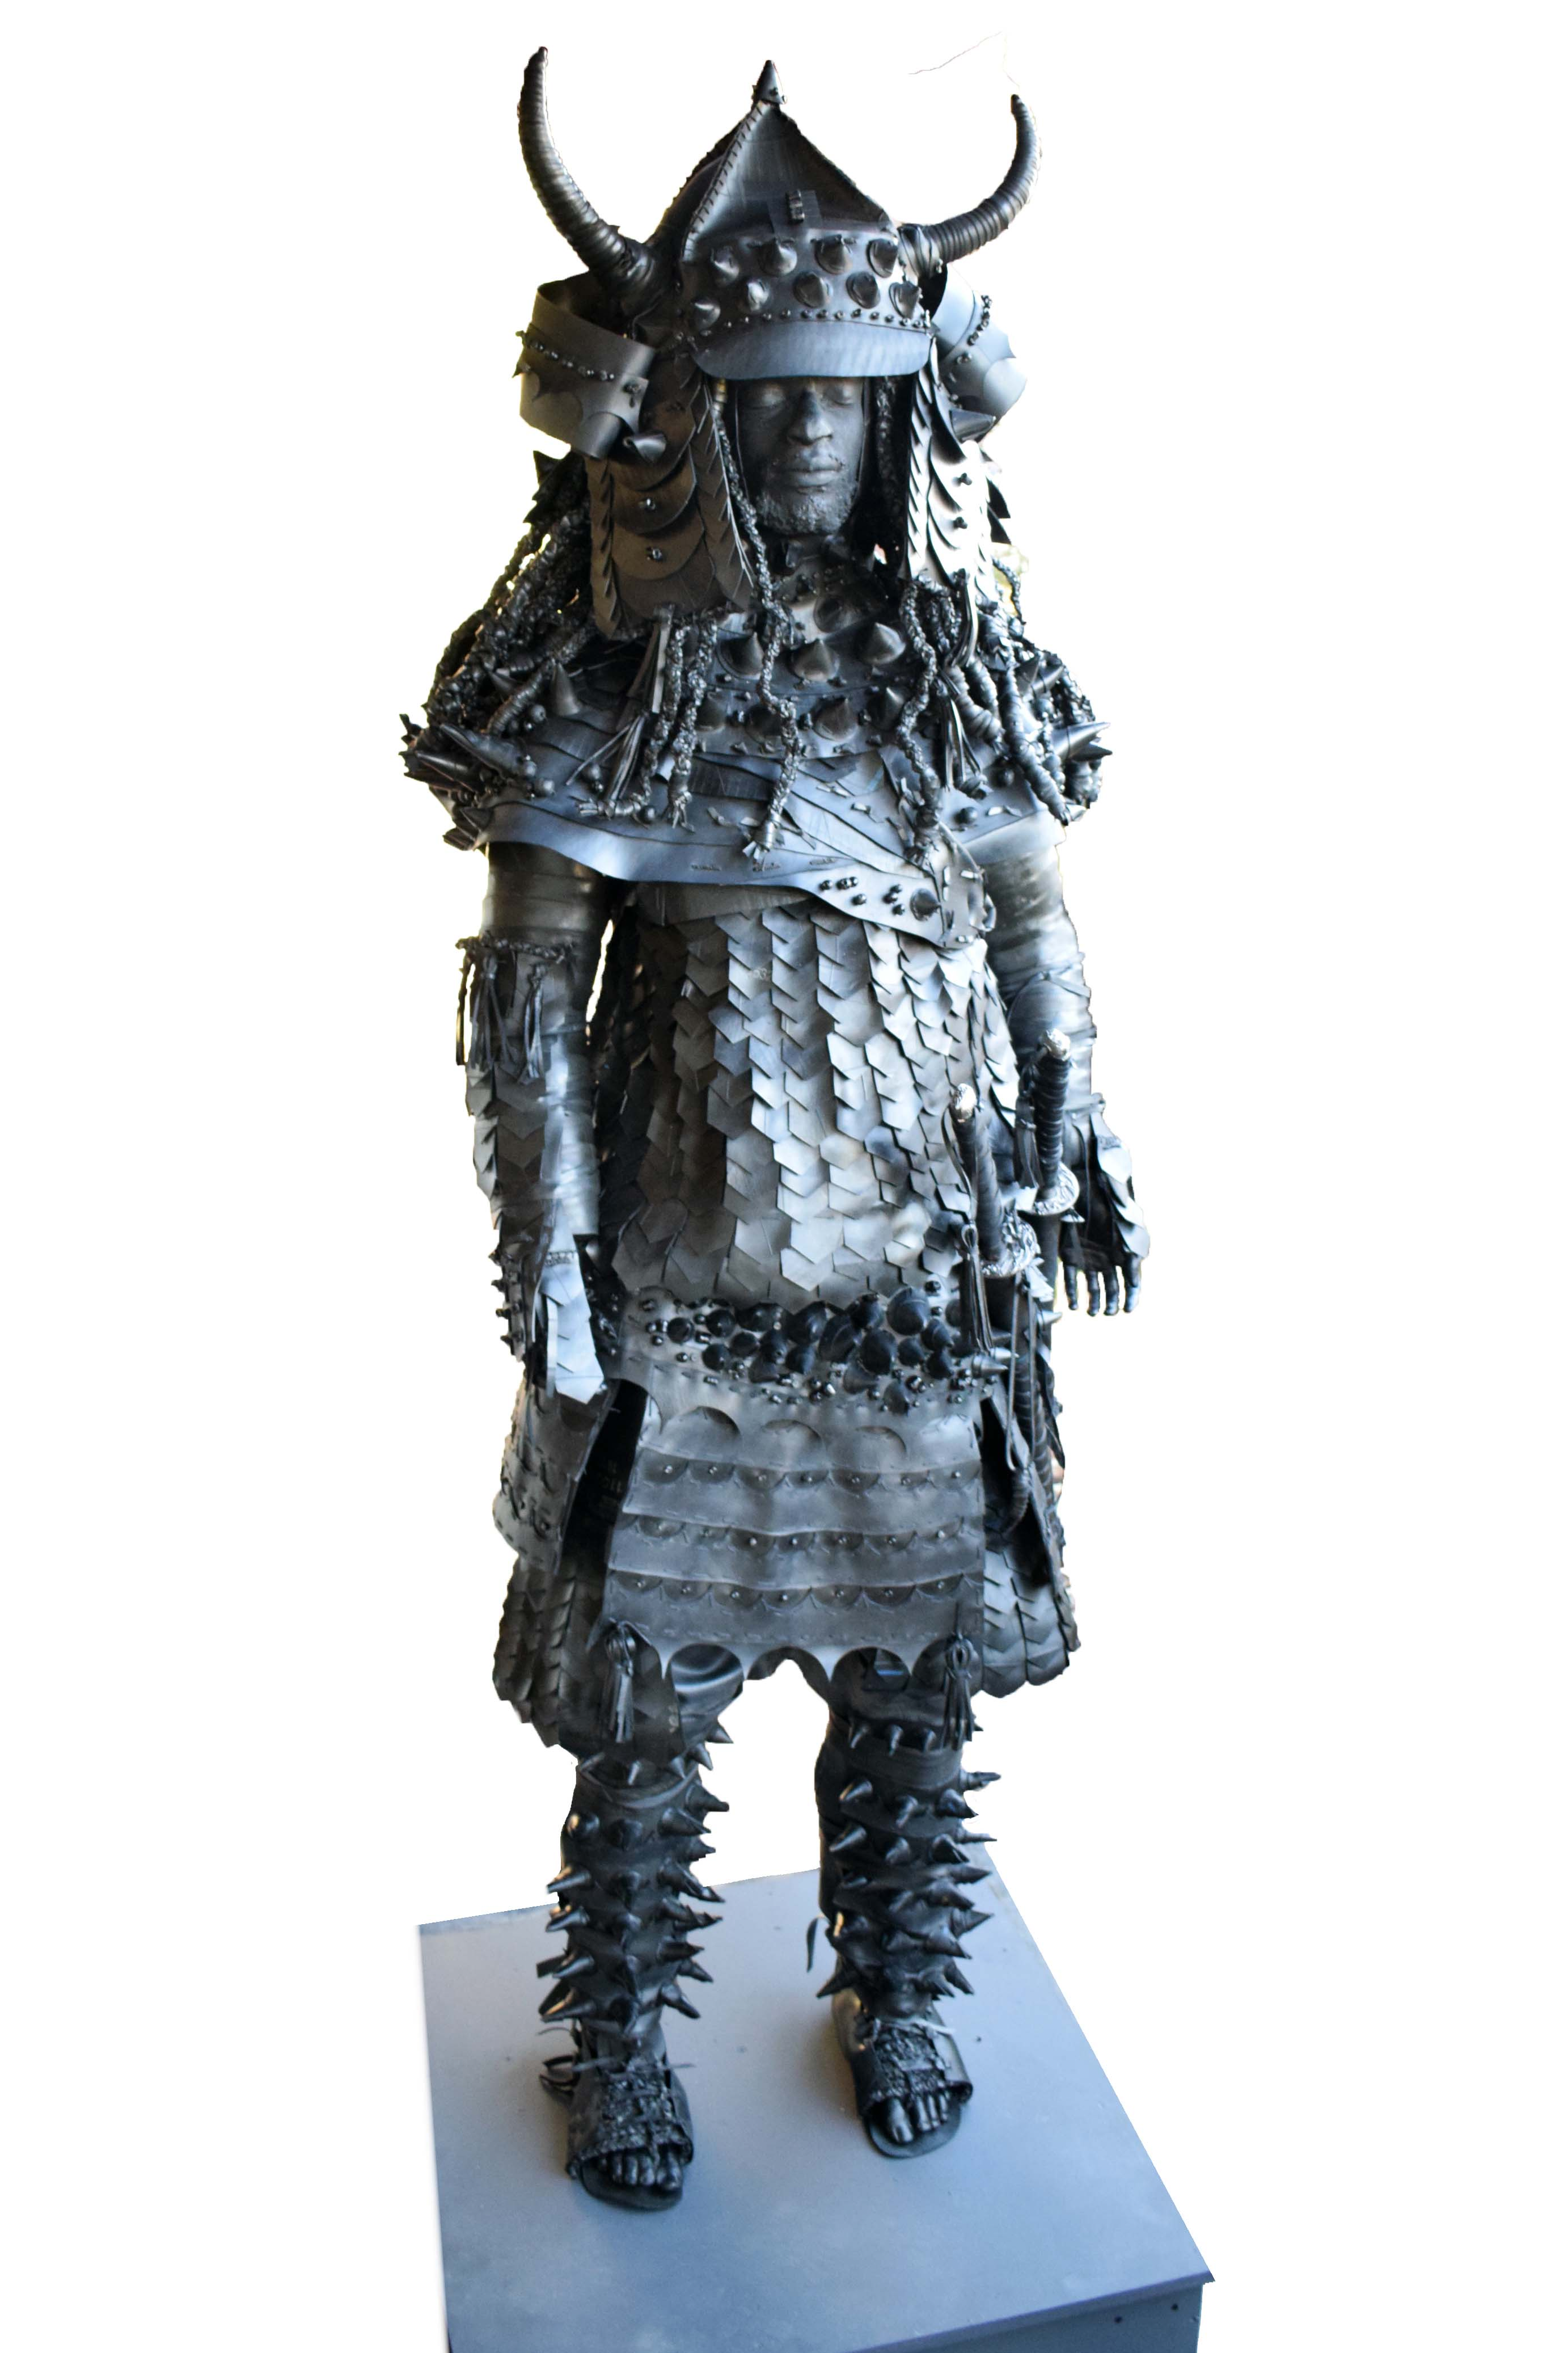 Another version of Yasuke, the African Samurai, wearing a suit of spiked armour and dreadlocks in his hair.